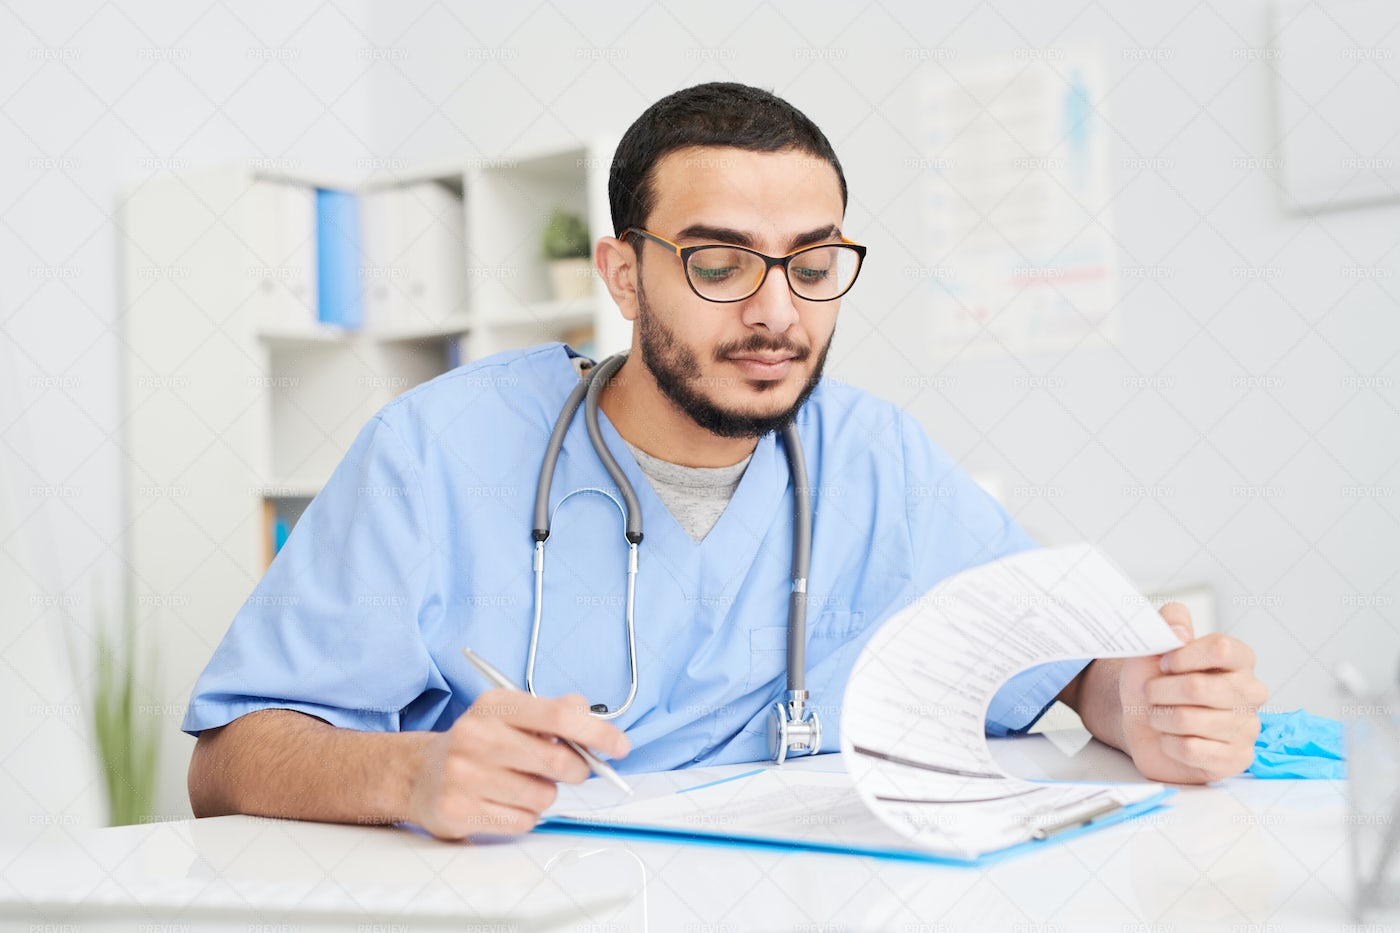 Middle-Eastern Doctor Filling In...: Stock Photos